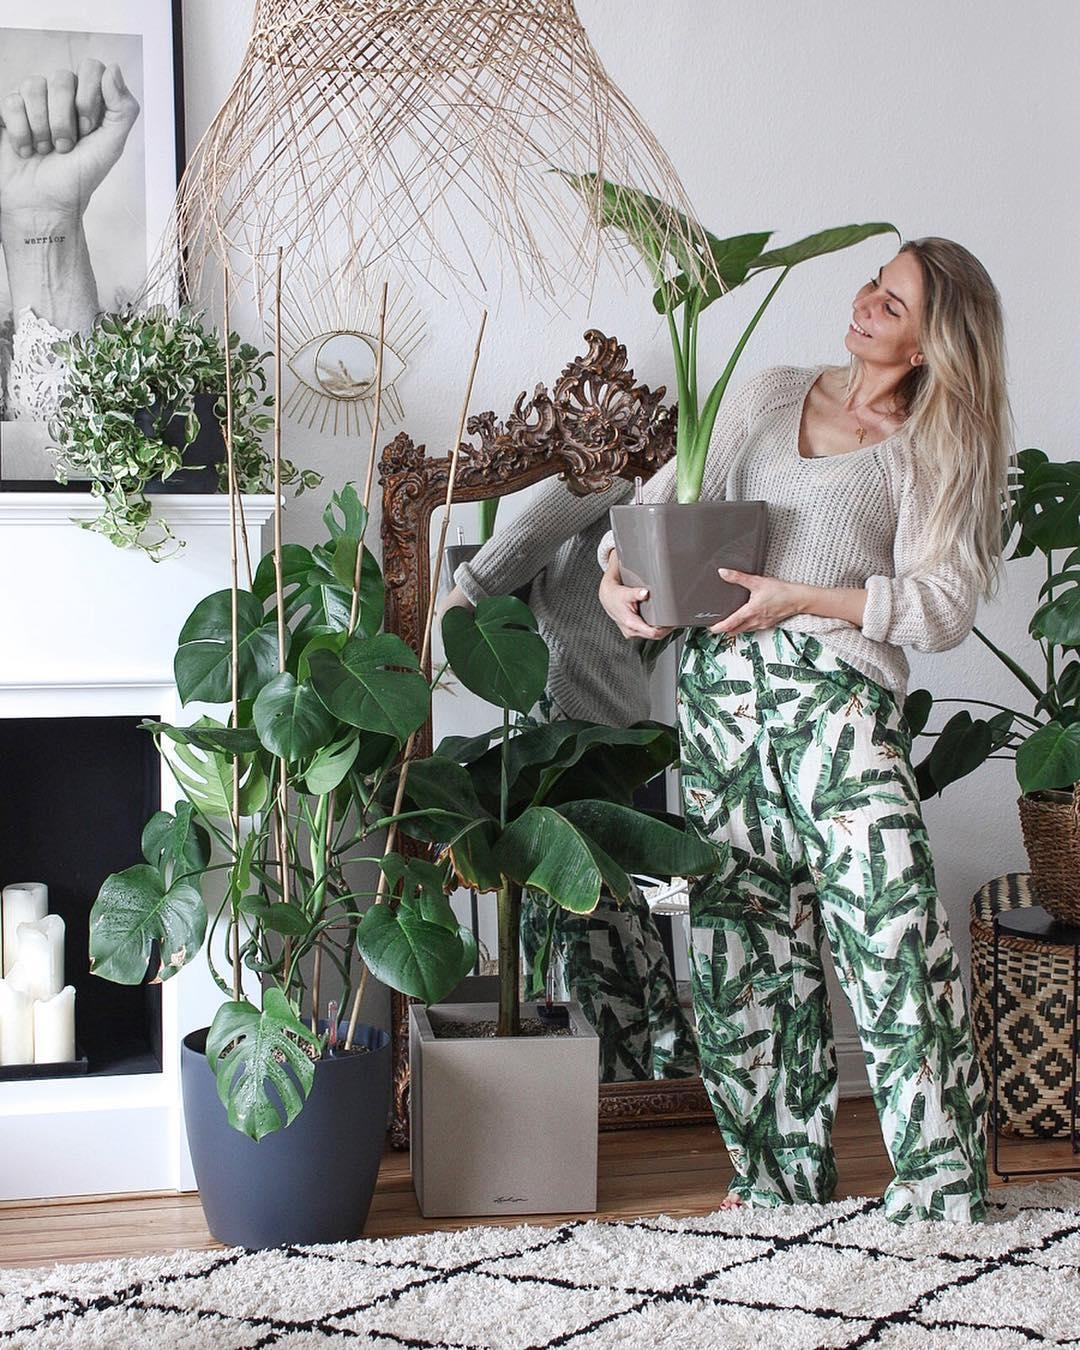 #Plants are my friends.